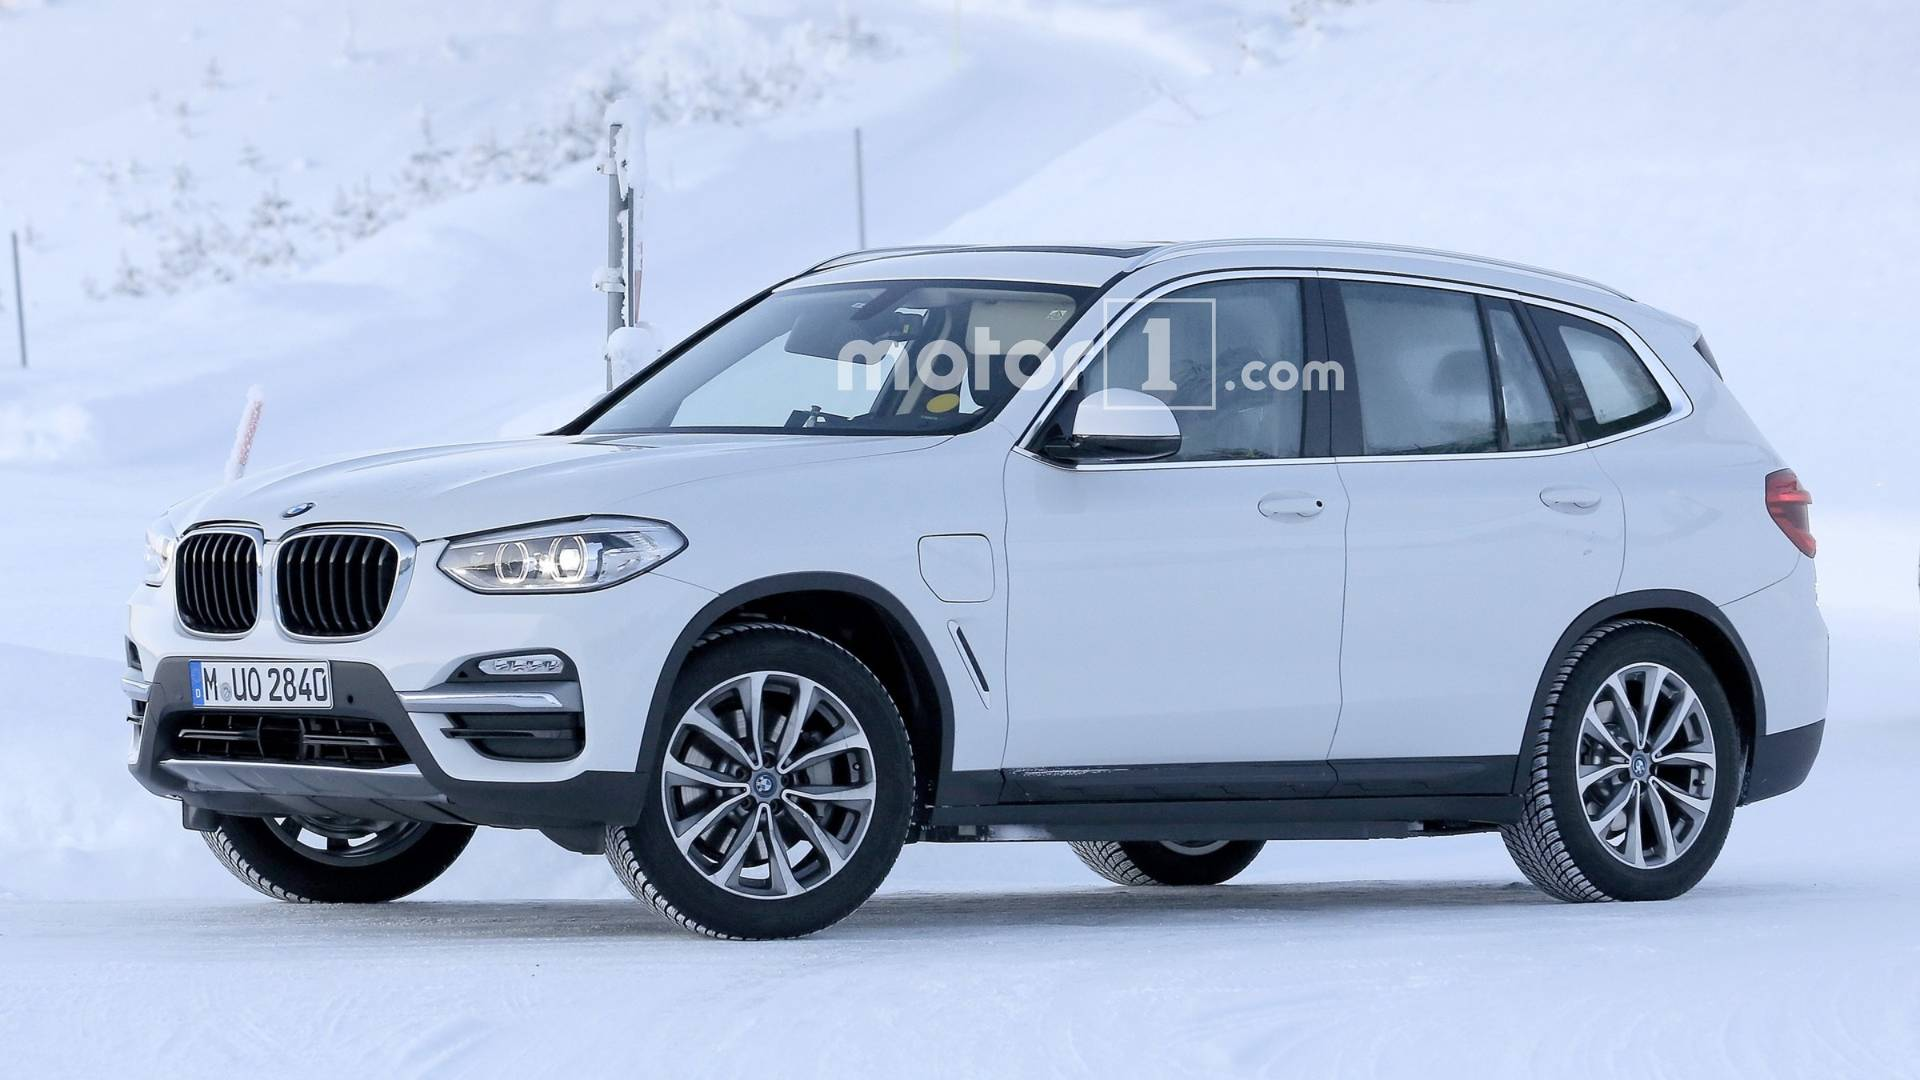 Fully Electric BMW iX3, Plug-In Hybrid X3 Make Spy Photo Debut